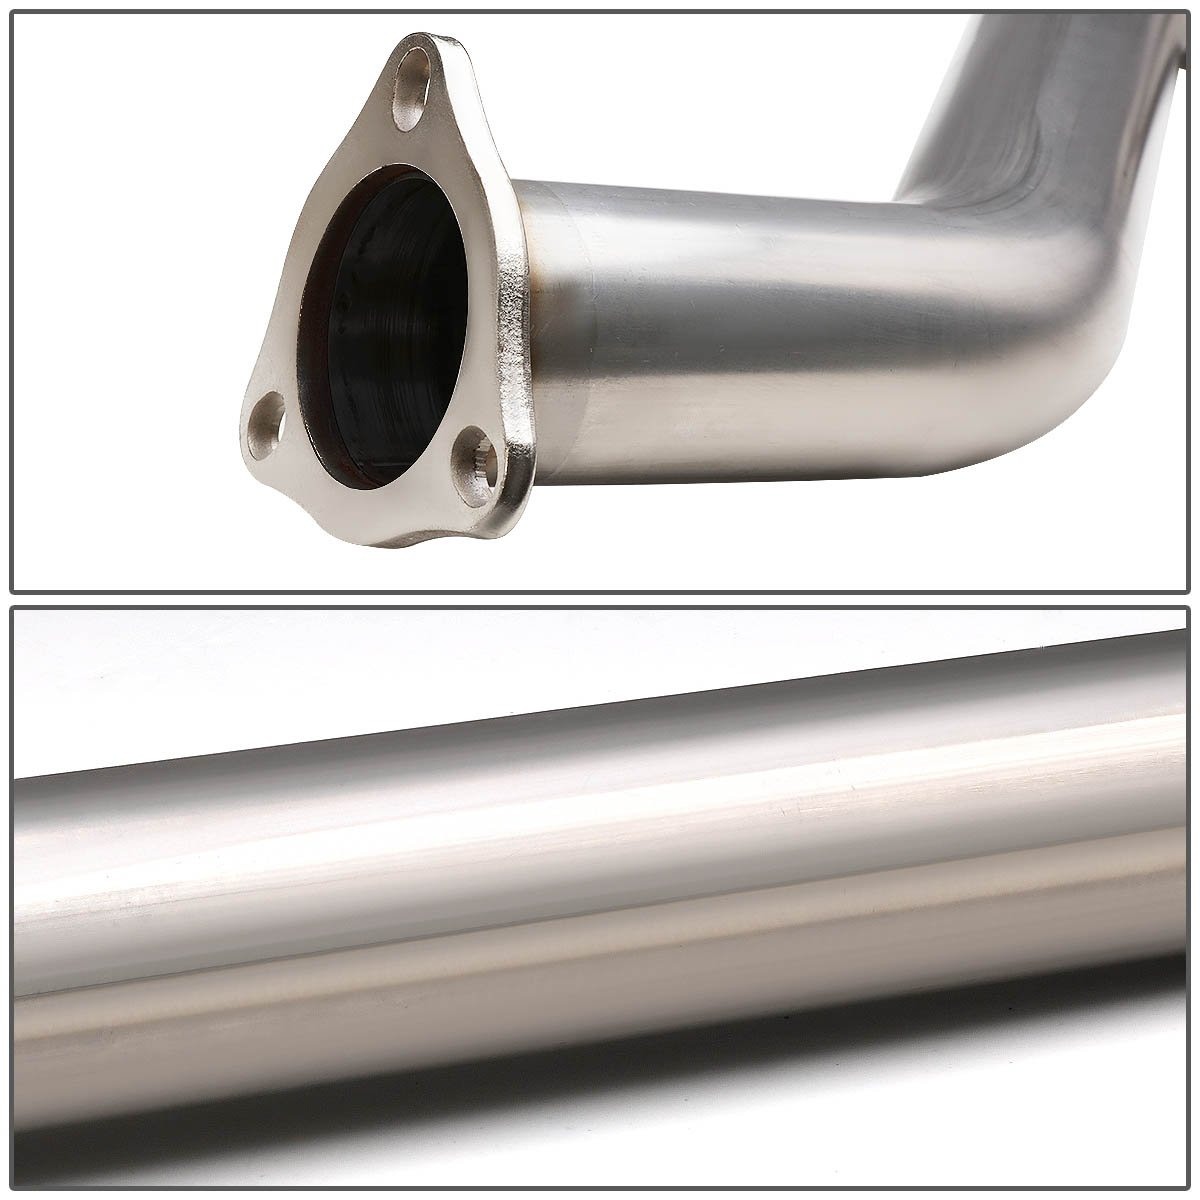 For Honda Civic Si Stianless Steel 4 inches Rolled Tip Oval Muffler Catback Exhaust System